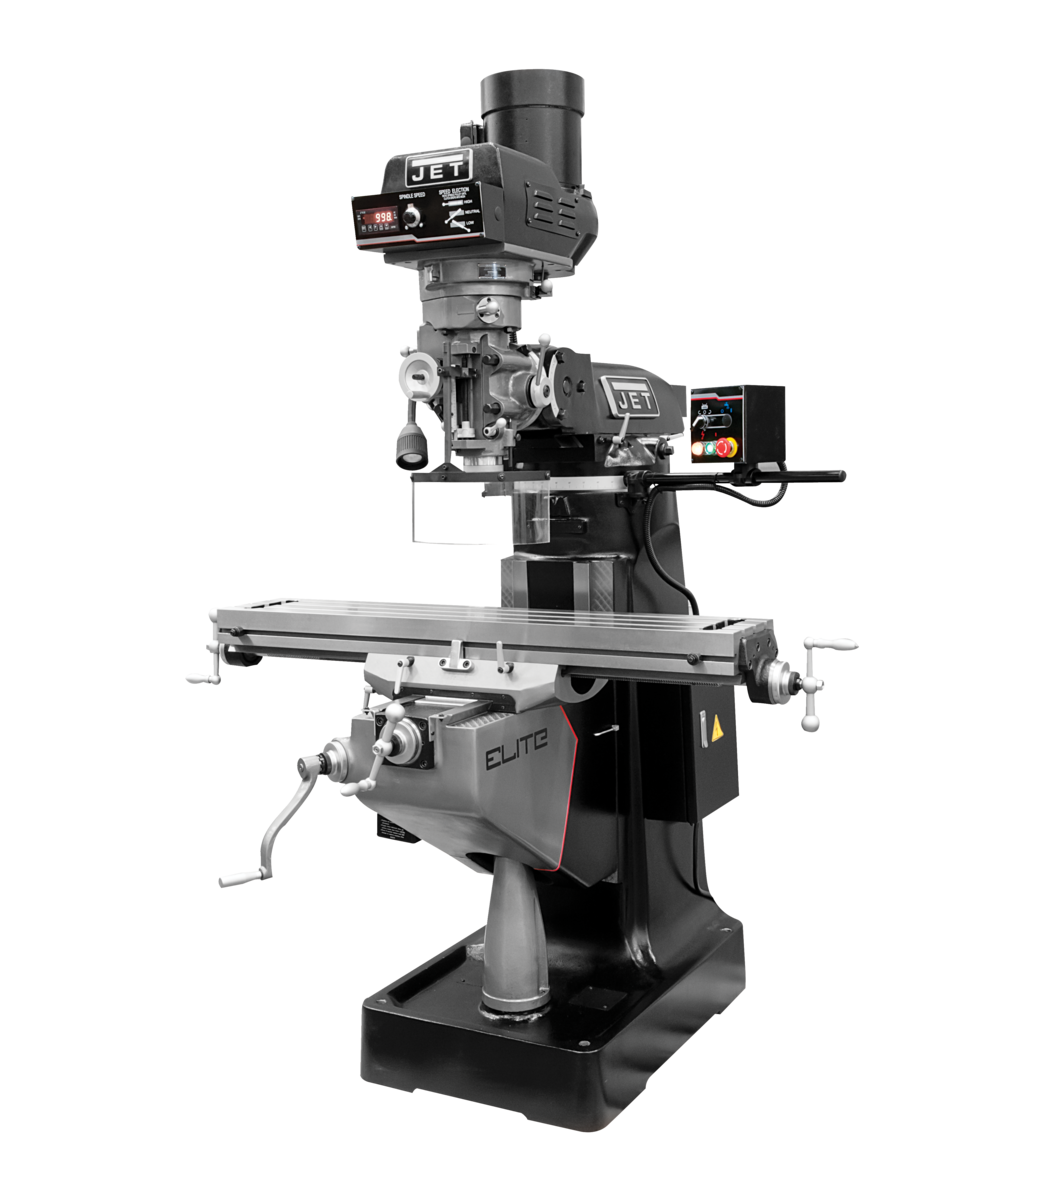 EVS-949 Mill with 2-Axis ACU-RITE 203 DRO